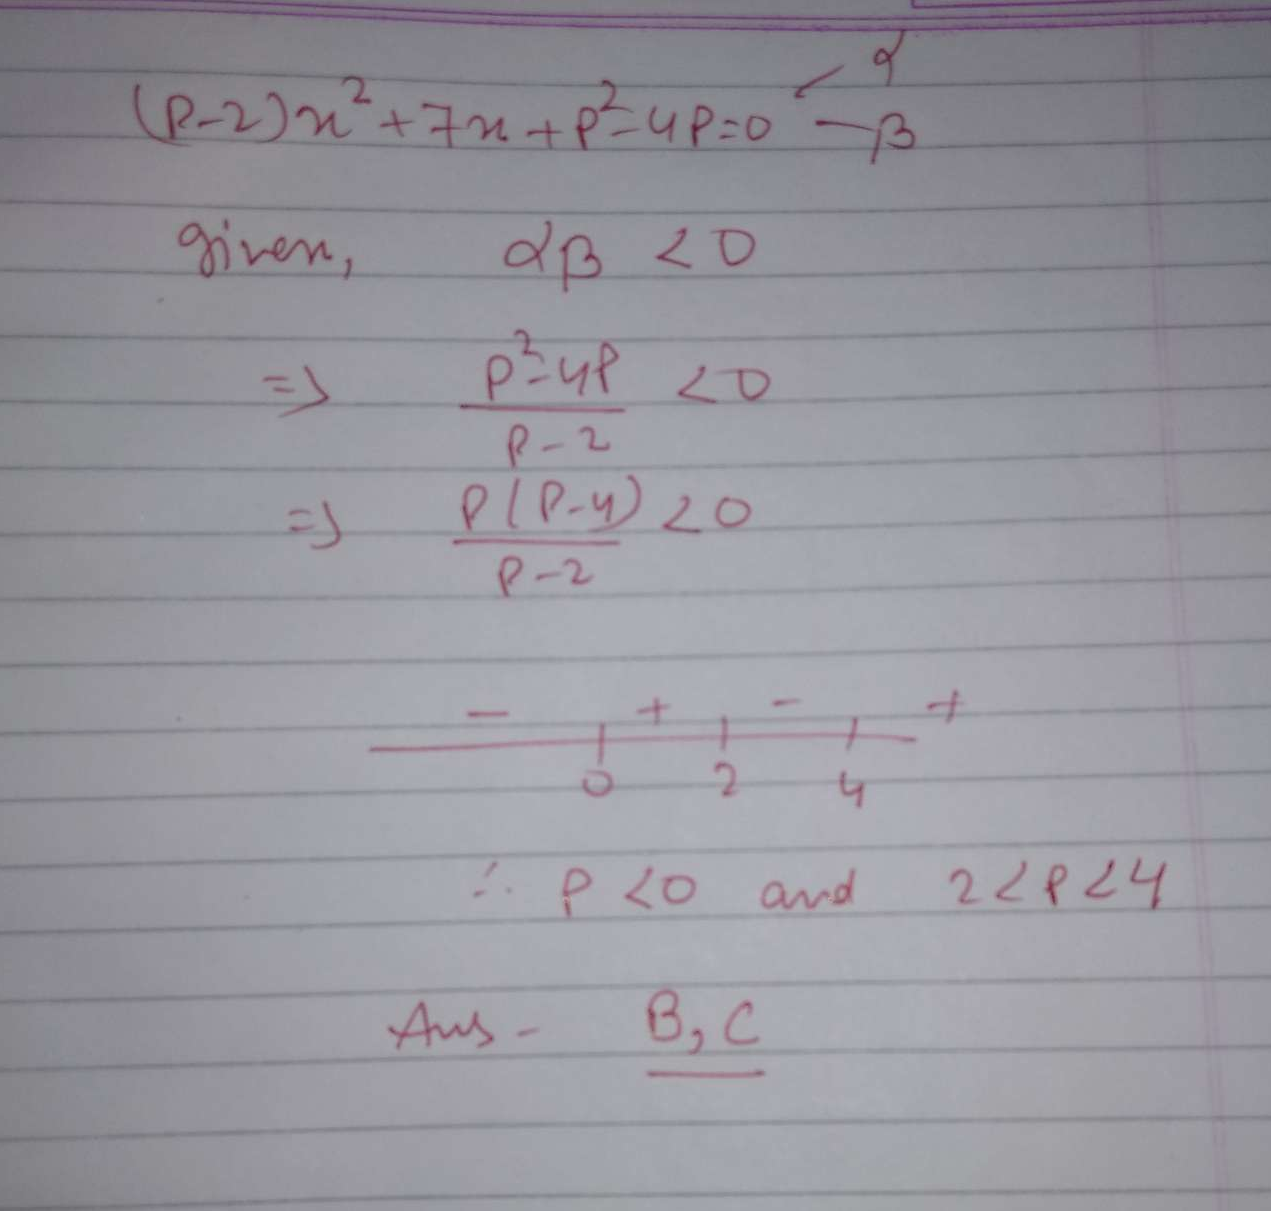 The set of values of p for which(p - 2)x^2 + 7x + p^2 - 4p = 0 has roots of opposite signs are